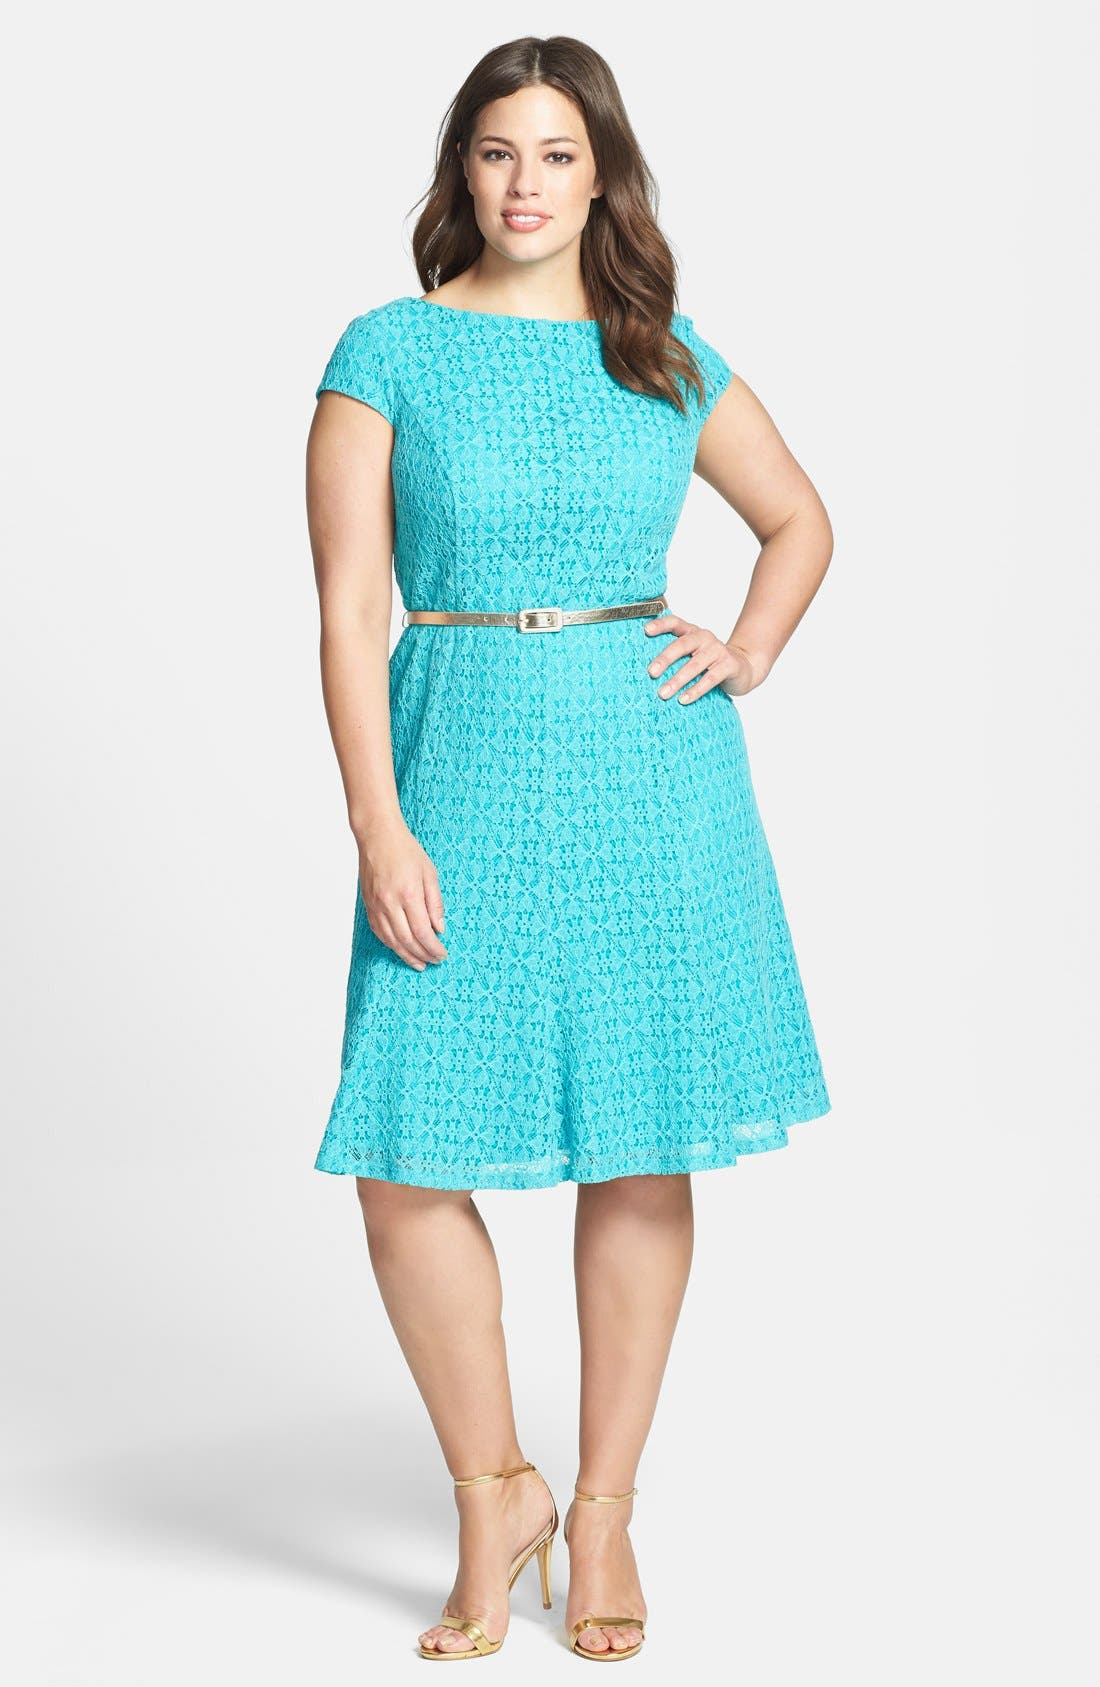 Alternate Image 1 Selected - London Times Belted Cap Sleeve Lace Fit & Flare Dress (Plus Size)